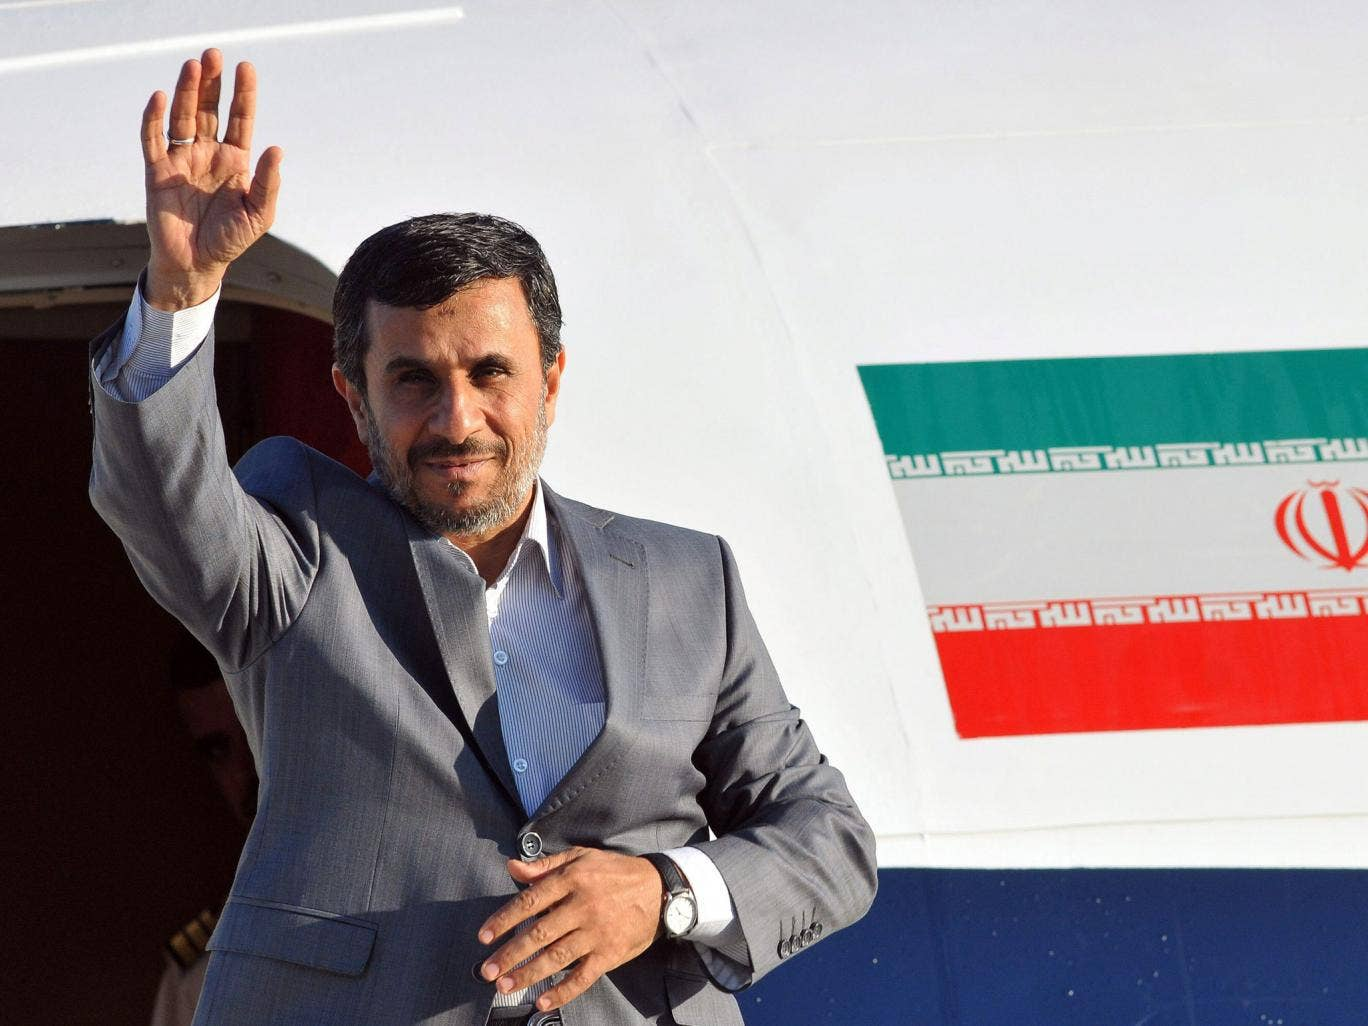 Iranians go to the polls to elect a new president, knowing that for the first time in eight years the country will be led by someone other than Mahmoud Ahmadinejad